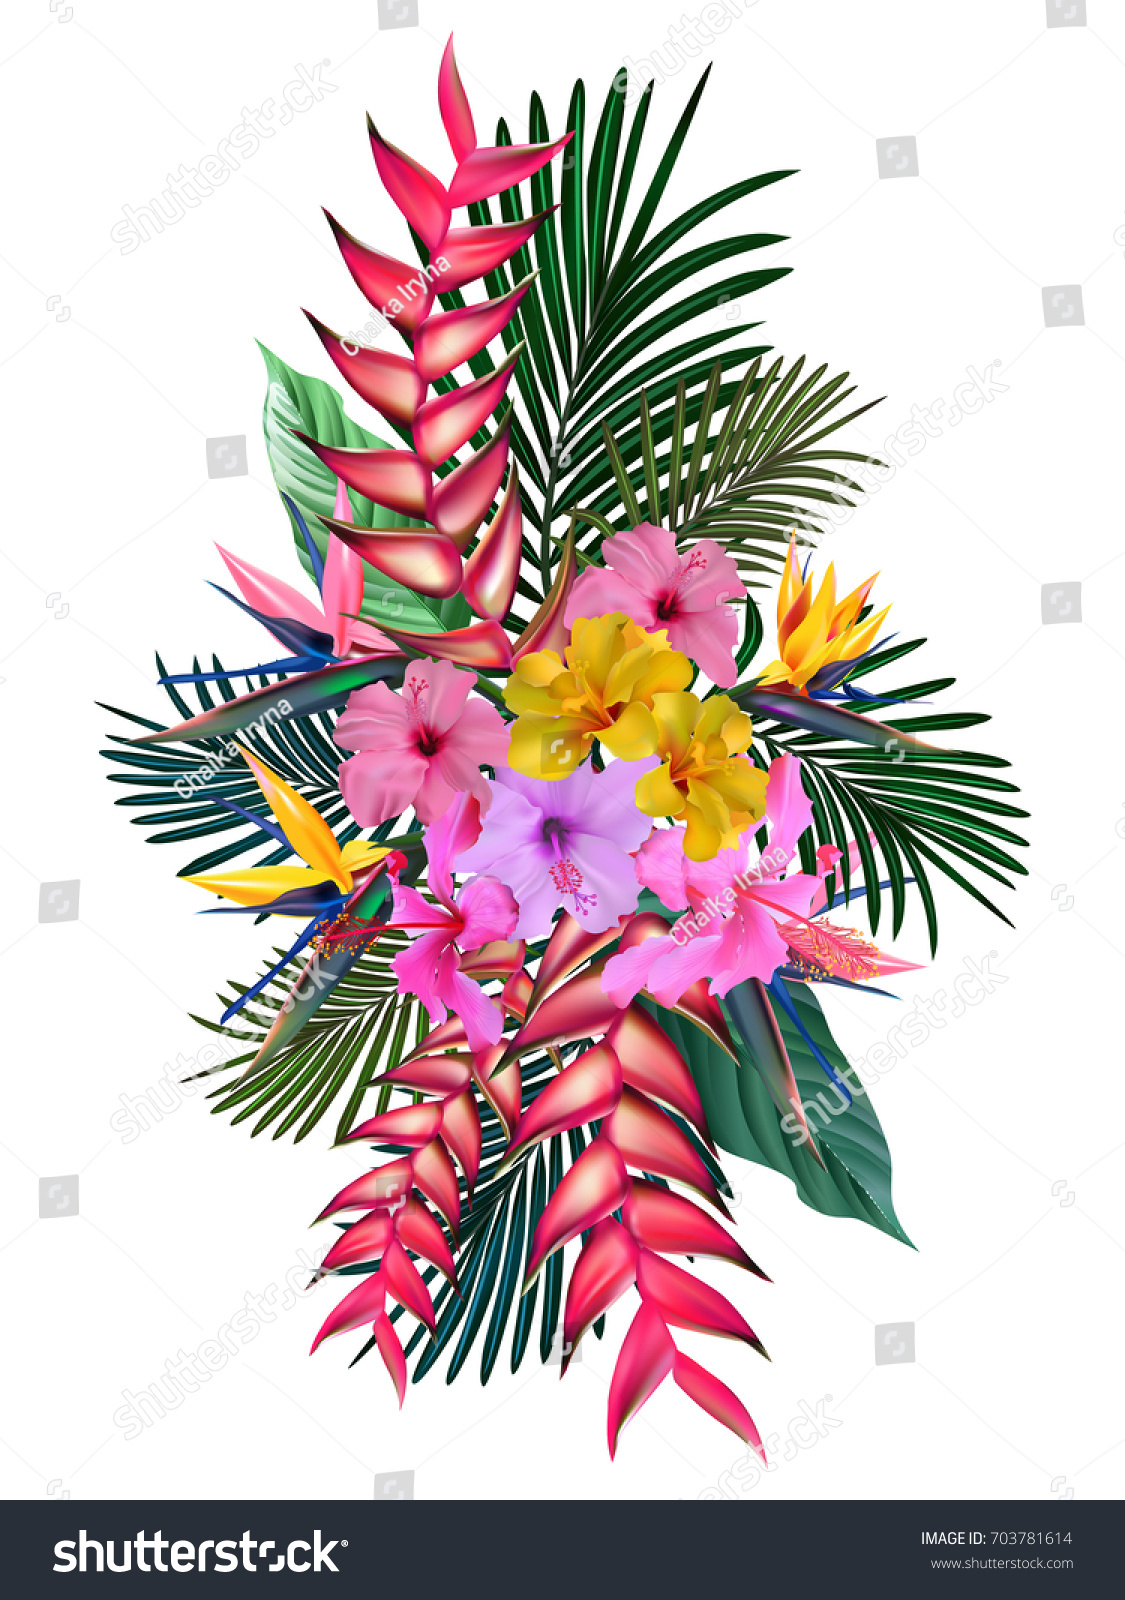 Tropical flowers palm leaves jungle plants stock vector hd royalty tropical flowers palm leaves jungle plants hibiscus hawaiian bouquet beautiful floral izmirmasajfo